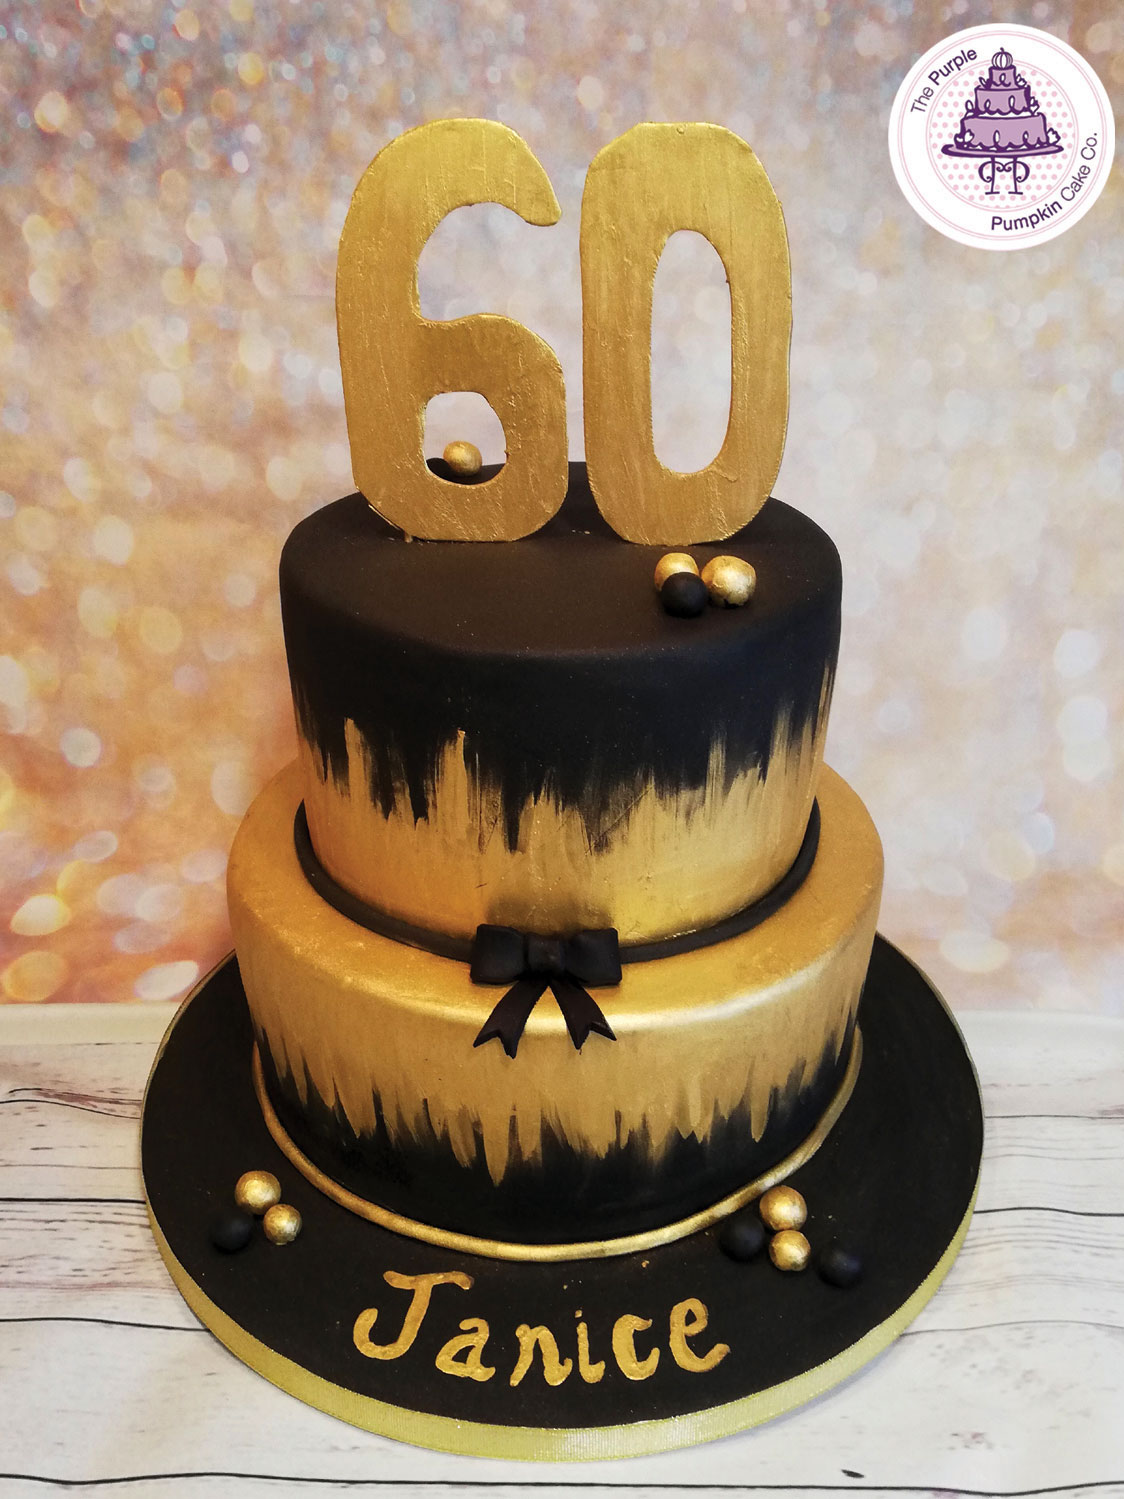 Black and gold 60th